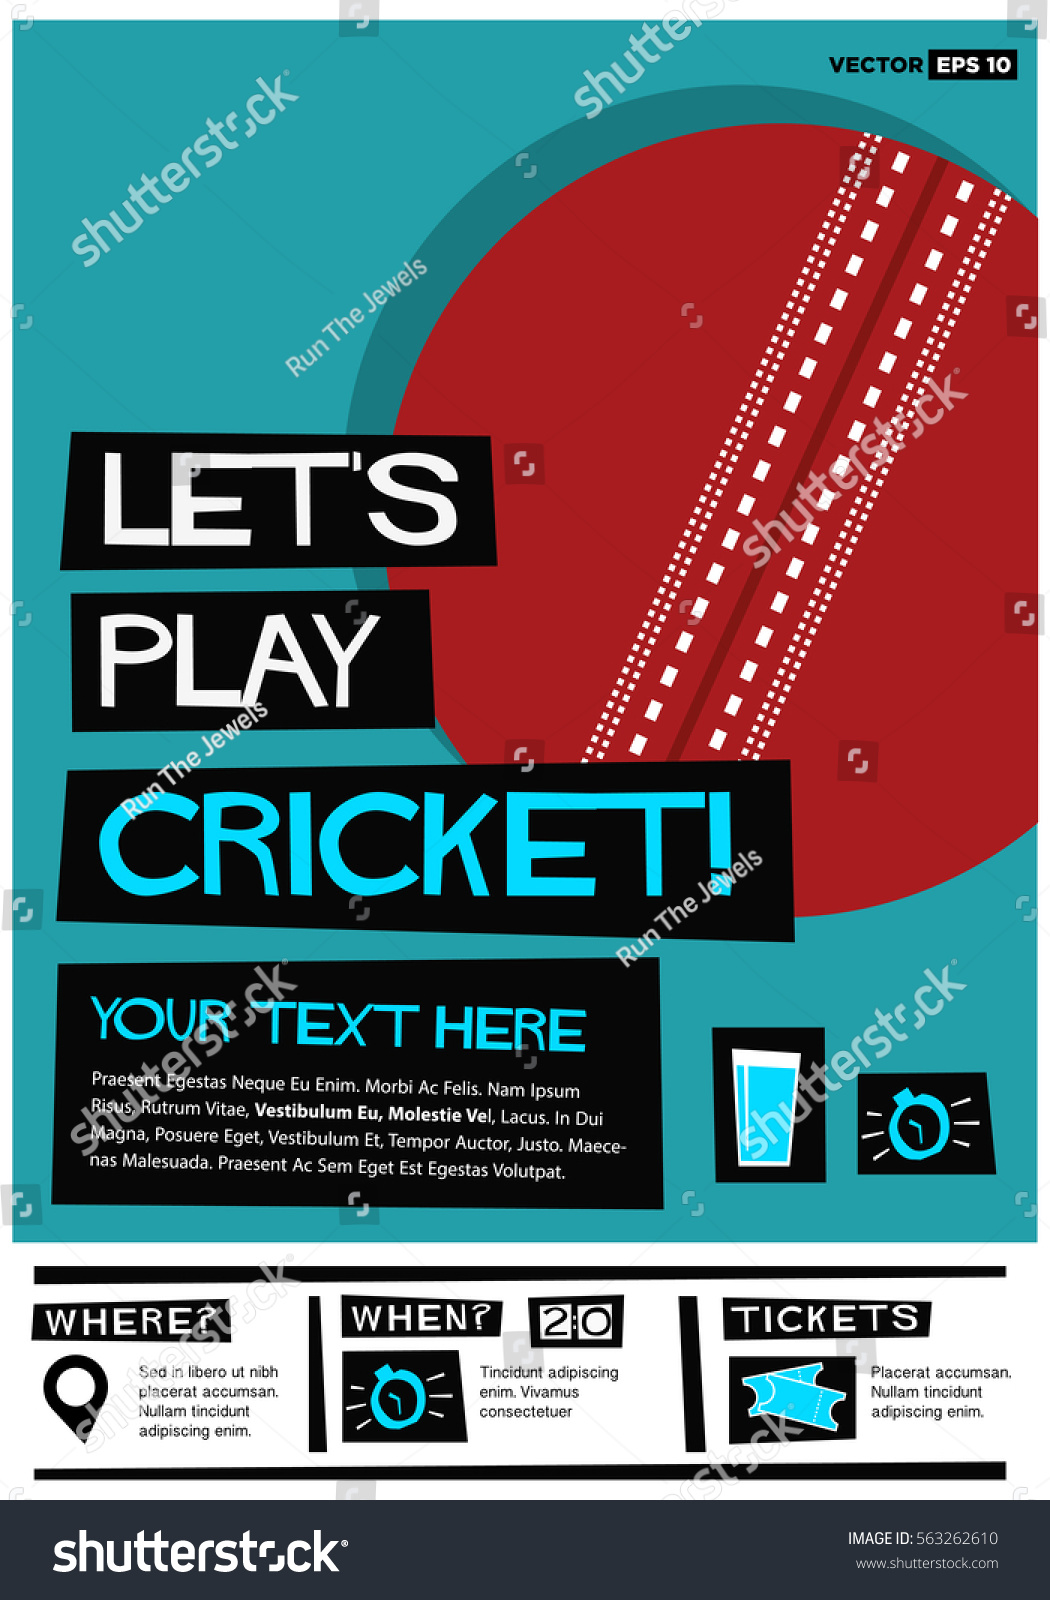 Poster design event - Let S Play Cricket Flat Style Vector Illustration Sports Poster Design Event Invitation With Venue